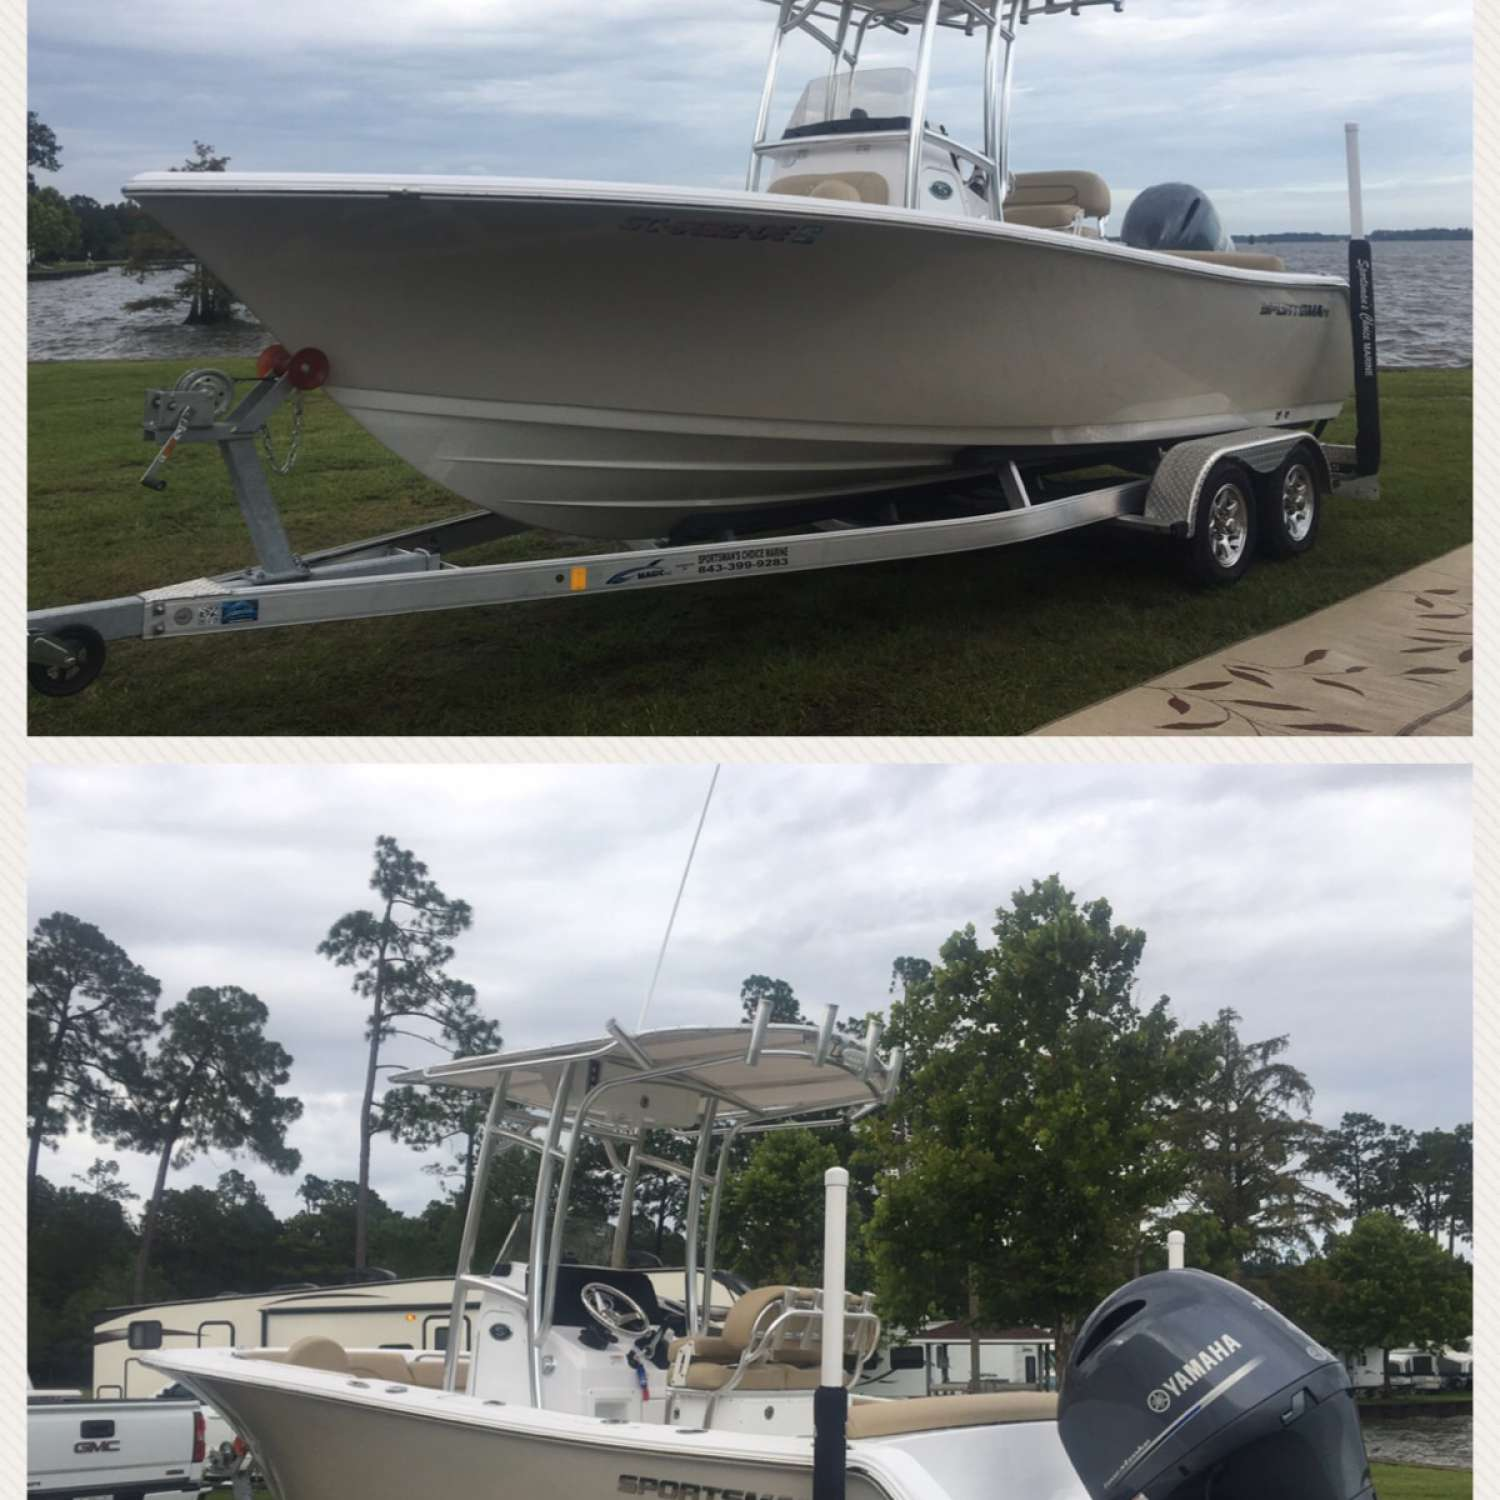 Title: Reggie's Sportsman - On board their Sportsman Heritage 211 Center Console - Location: Conway, South Carolina. Participating in the Photo Contest #SportsmanSeptember2017